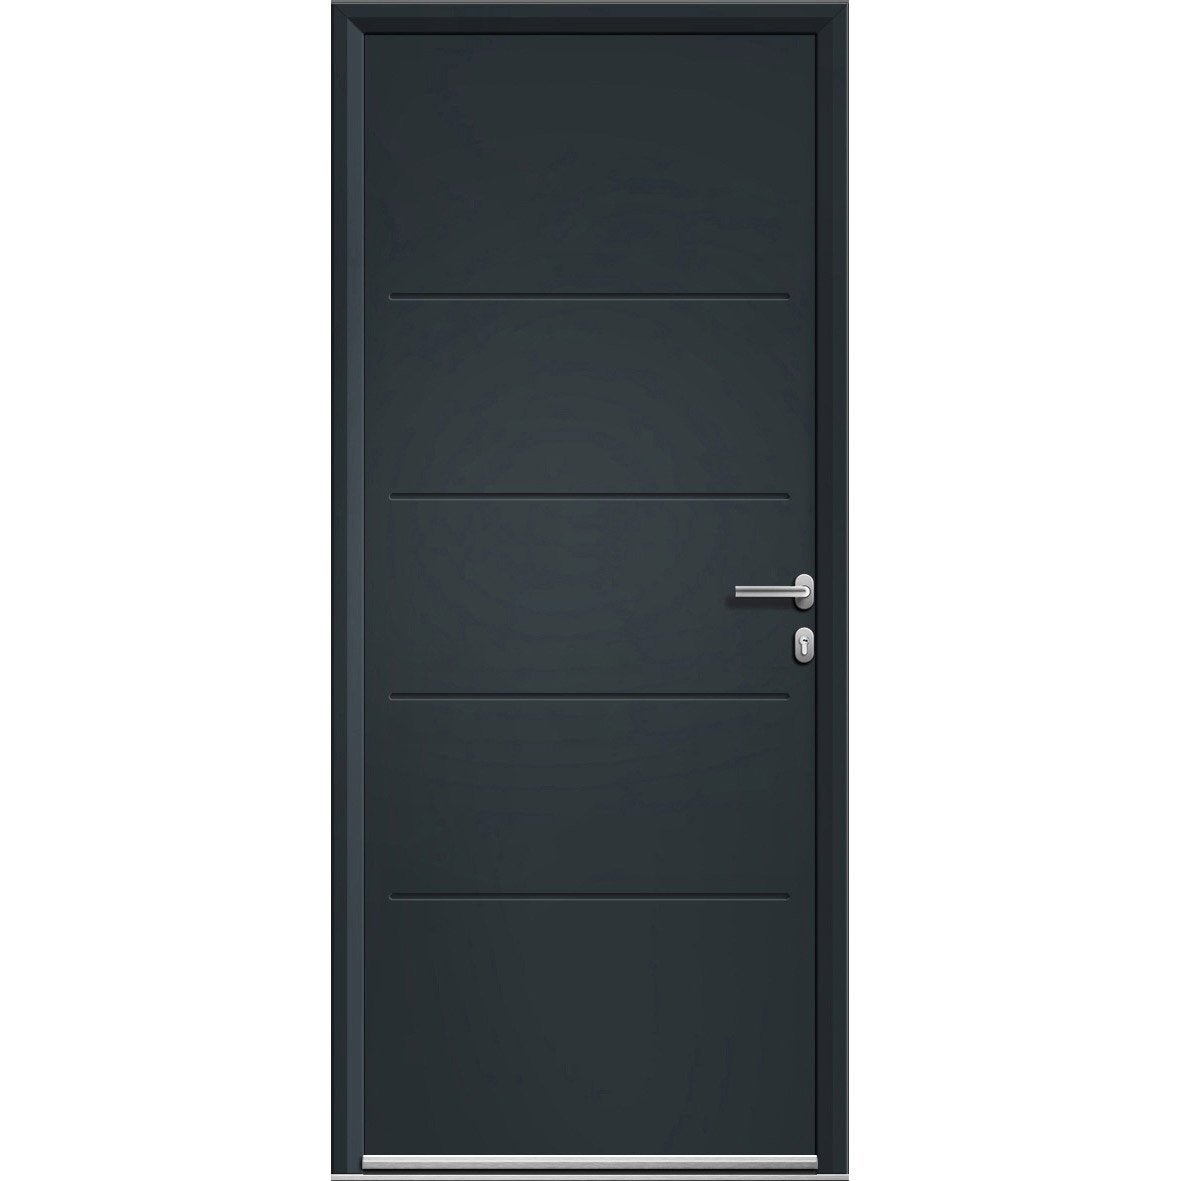 porte entree vitree leroy merlin maison design. Black Bedroom Furniture Sets. Home Design Ideas